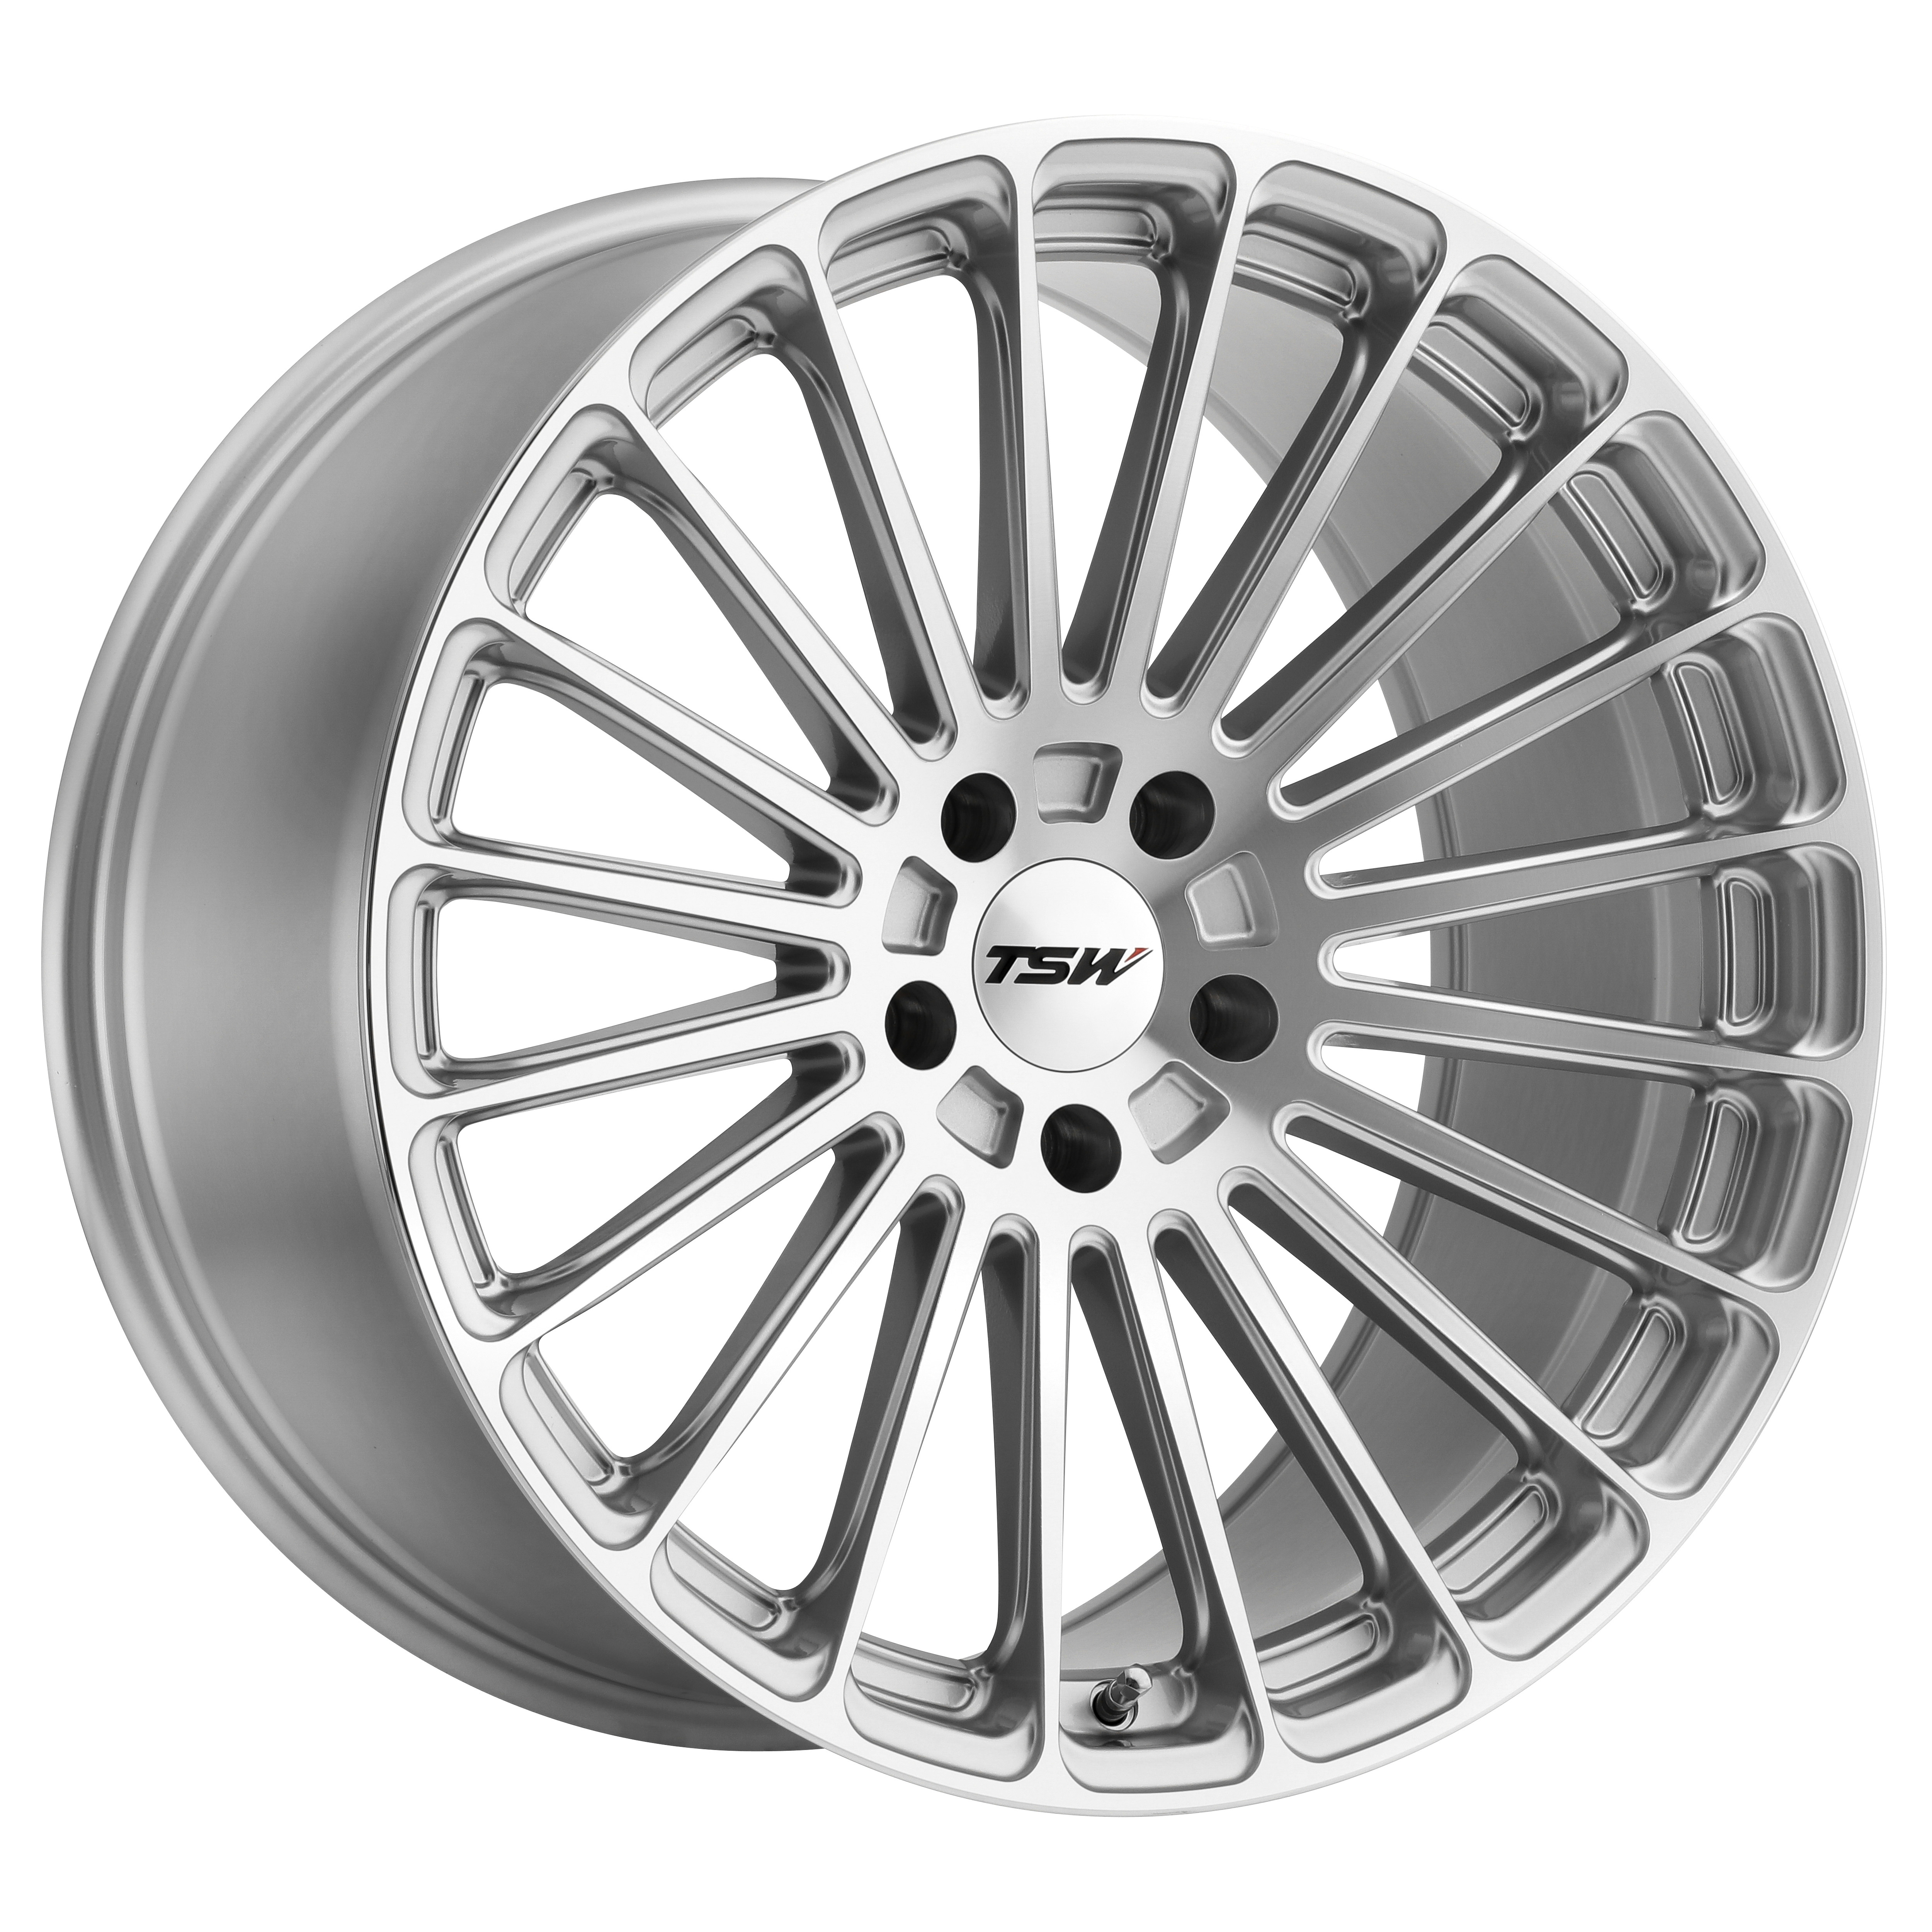 Attractive Tx Wire Wheels Sketch - The Wire - magnox.info